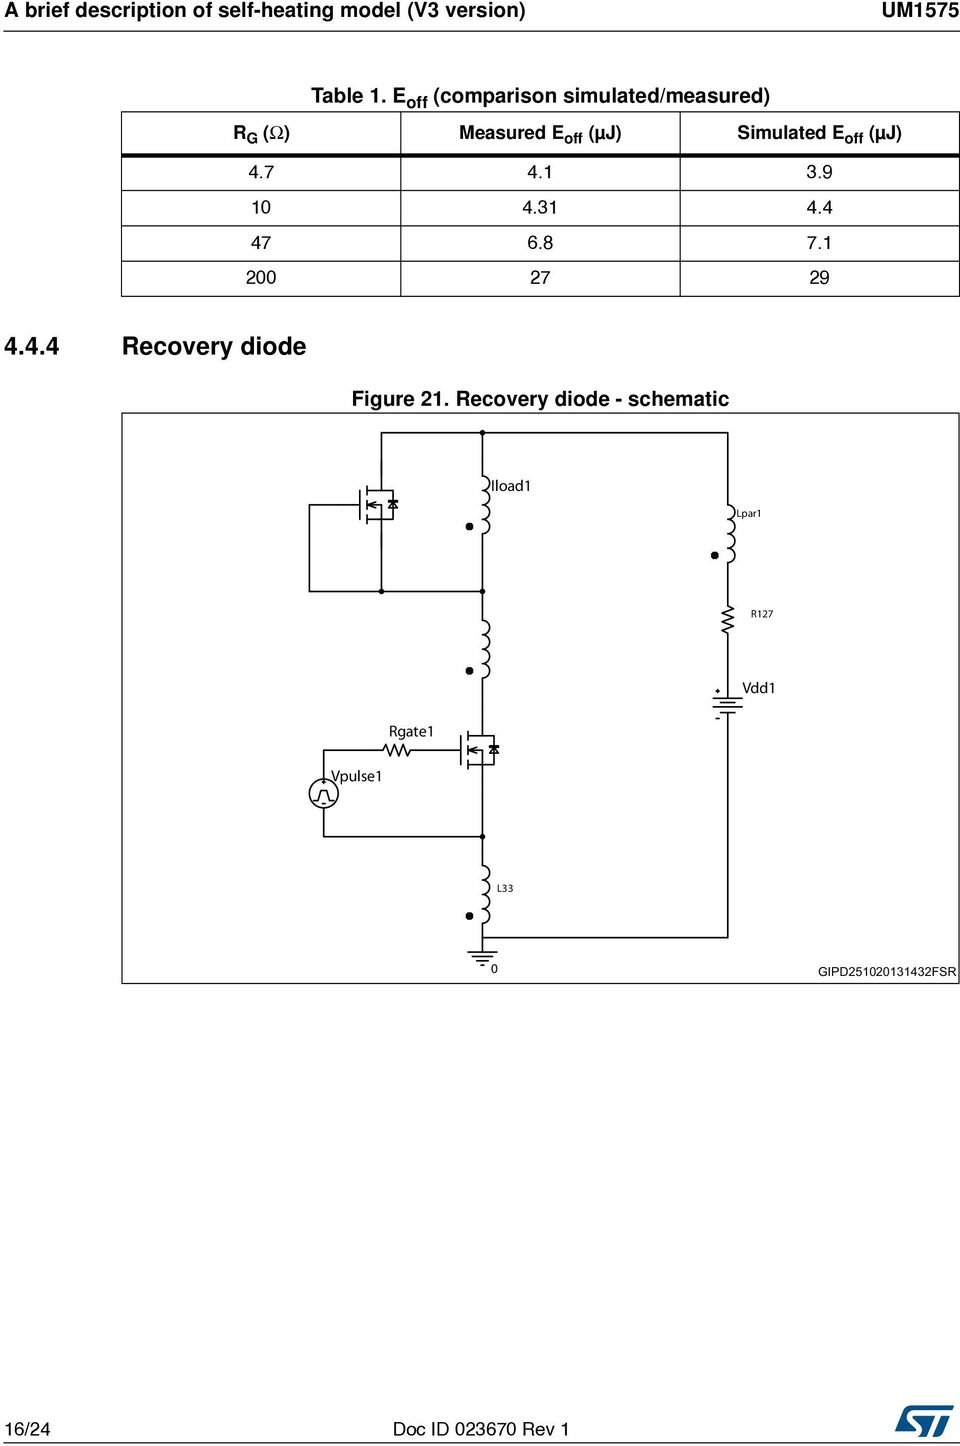 Um1575 User Manual Spice Model Tutorial For Power Mosfets L33 Engine Diagram 47 41 39 10 431 44 68 71 200 27 29 444 Recovery